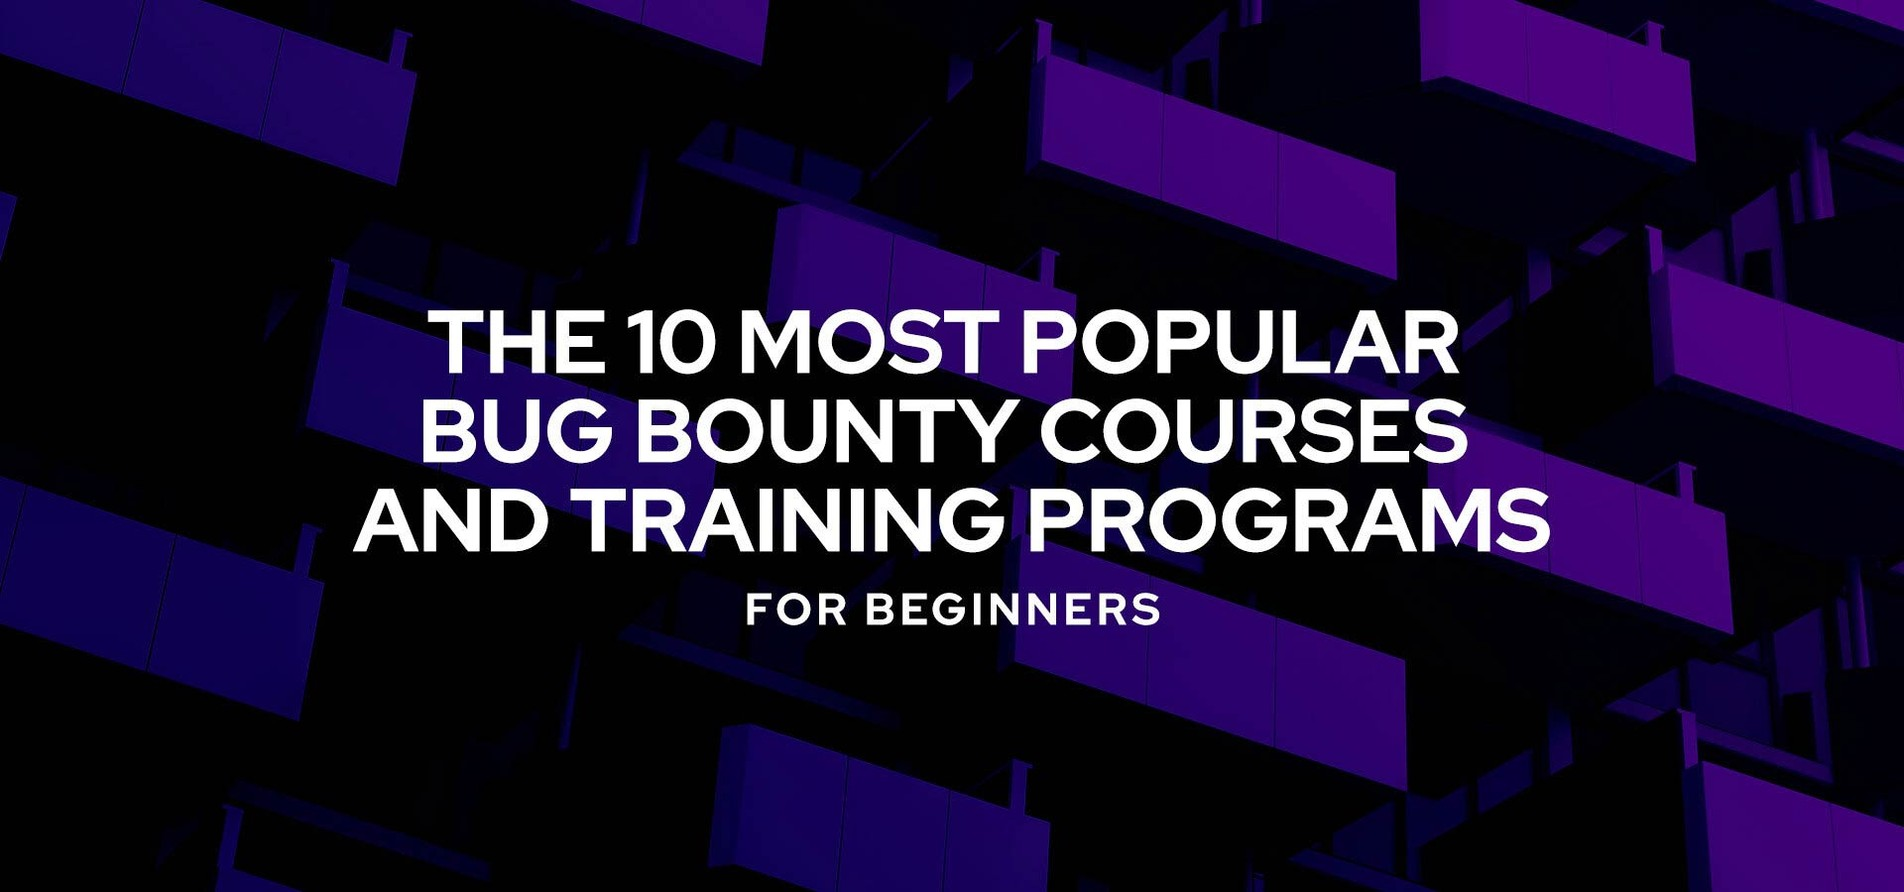 The 10 Most Popular Bug Bounty Courses and Training Programs for Beginners.